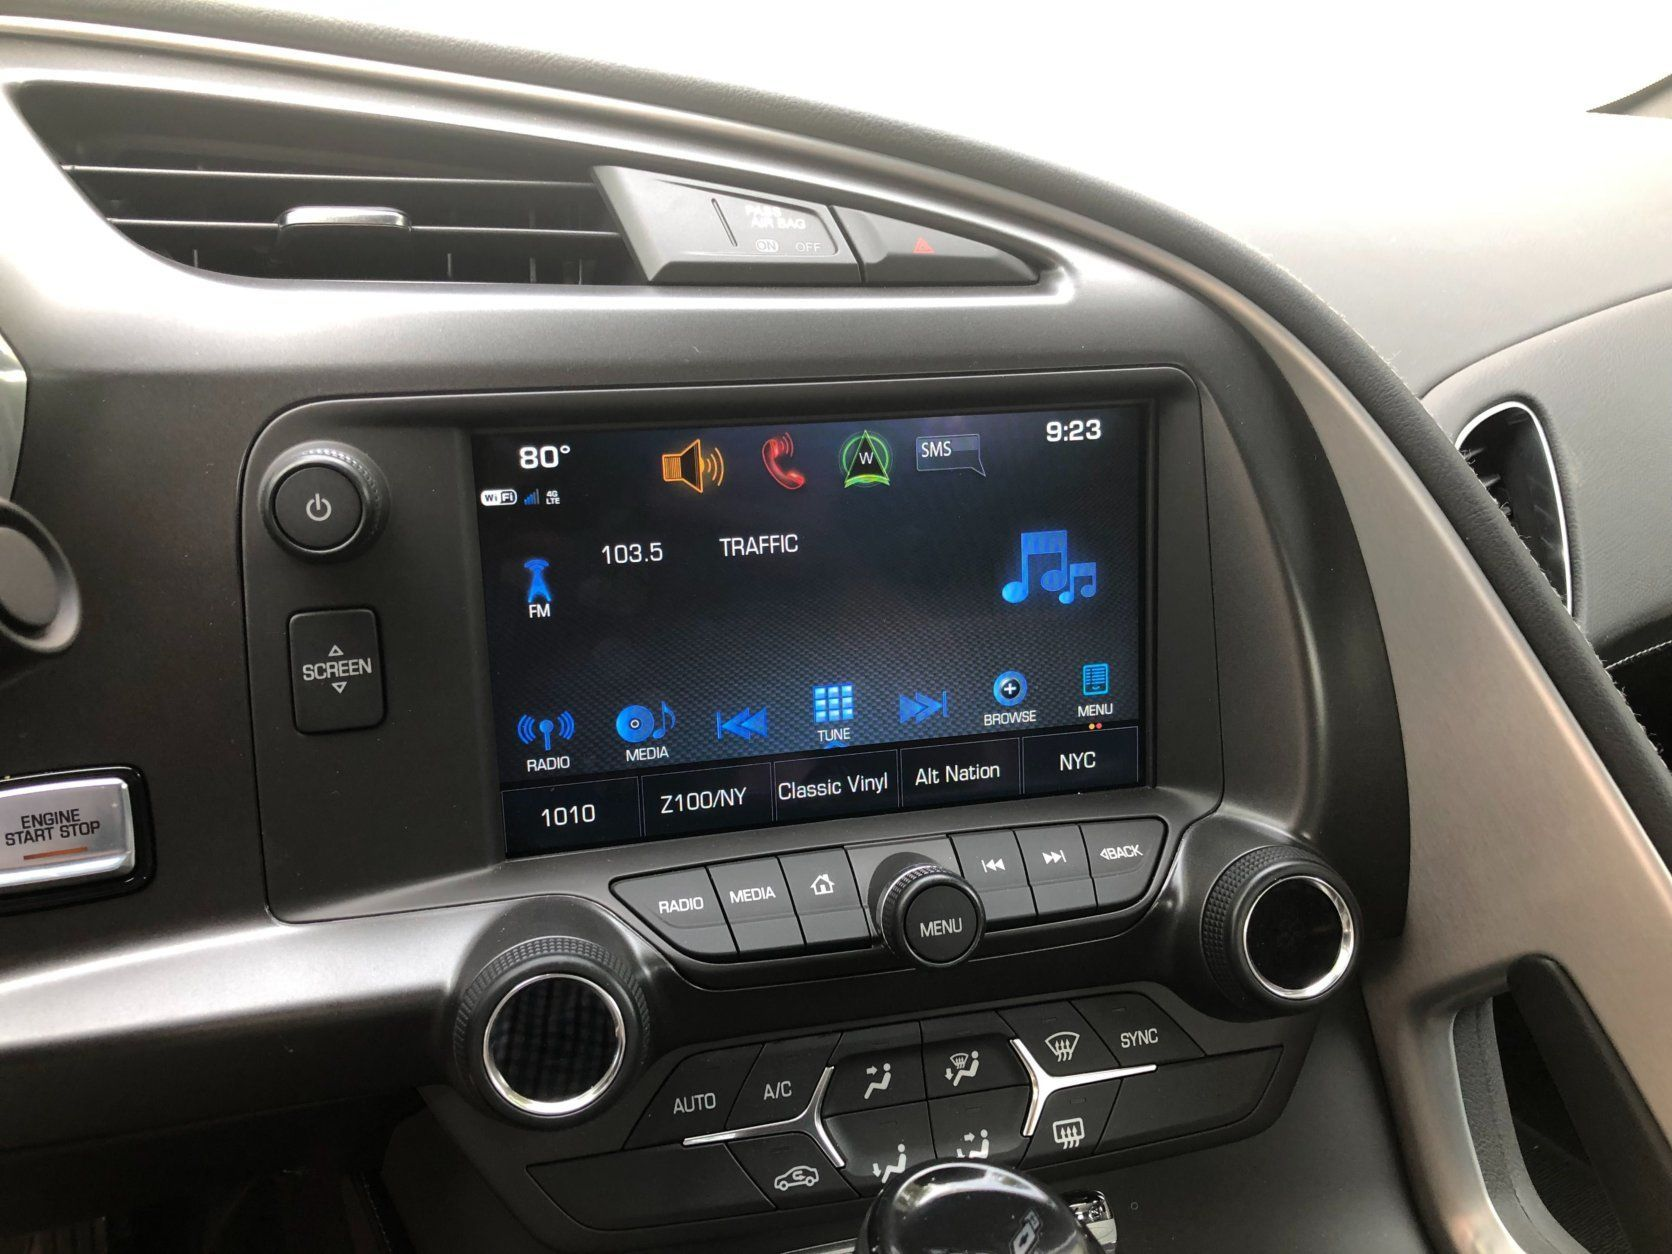 <p>Inside the Corvette Grand Sport is mostly a businesslike cockpit.</p> <p>There are three trim levels for the Grand Sport. I drove the 1LT or lowest trim level.</p> <p>It stickers for less than $69,000 but prices are much lower than sticker as dealers look to sell 2019 models.</p> <p>The heated leather seats kept me in place on twisty roads just fine. But if you are going to hit the track, I would spend the extra money for the sport bucket seats that are built for the high G forces this car can produce at speed.</p> <p>You sit pretty low in the Corvette and the Grand Sport has those larger fenders so vision is slightly compromised for shorter drivers.</p>